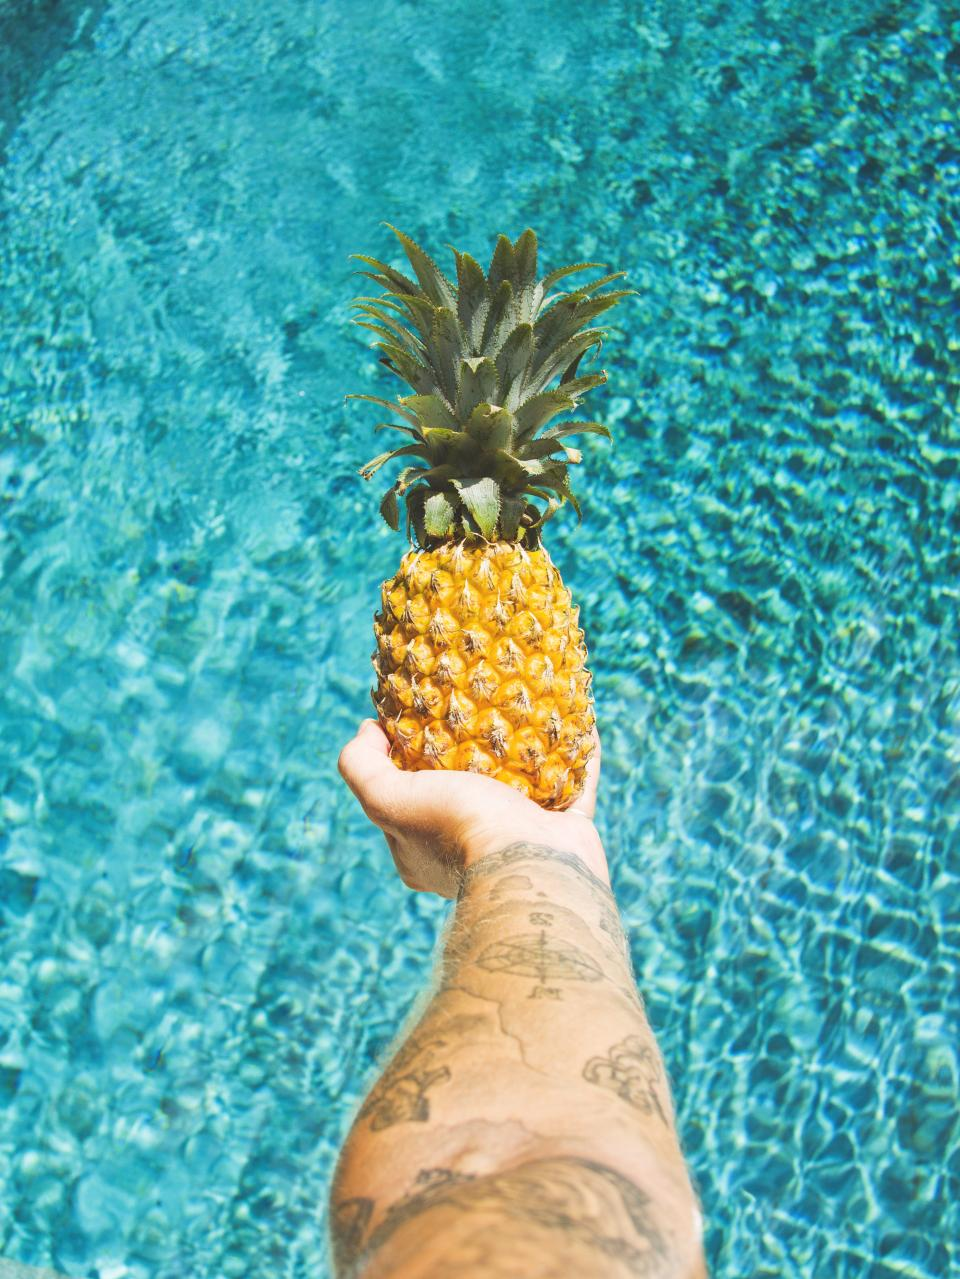 water liquid pool swimming vacation rest hands tattoo art fruit pineapple outdoor